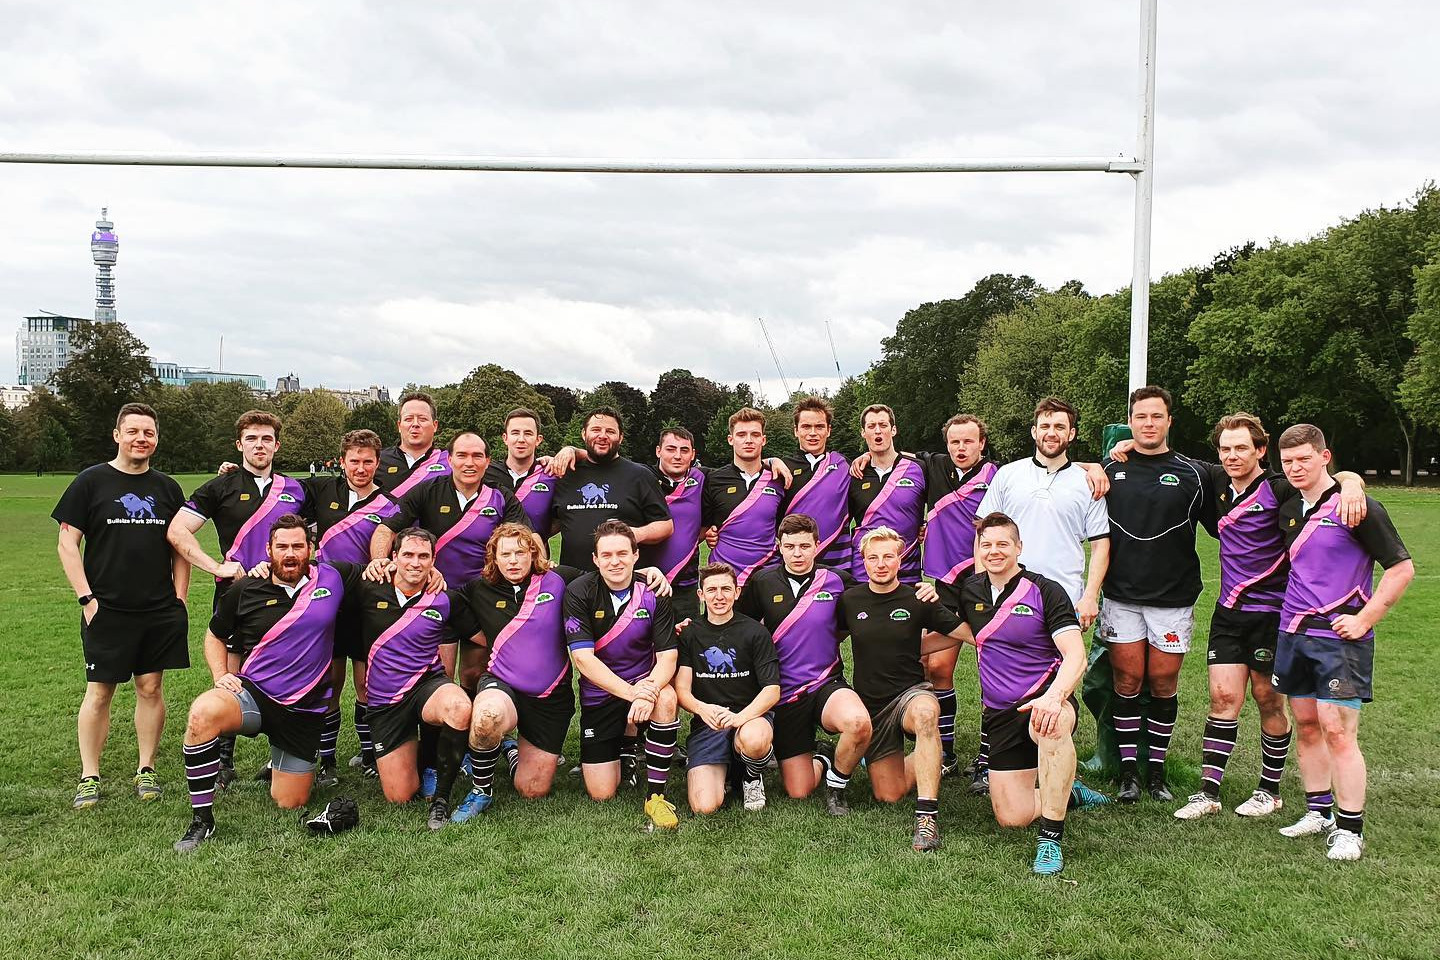 https://www.bprfc.co.uk/wp-content/uploads/2019/10/Bulls_2019-1.jpg